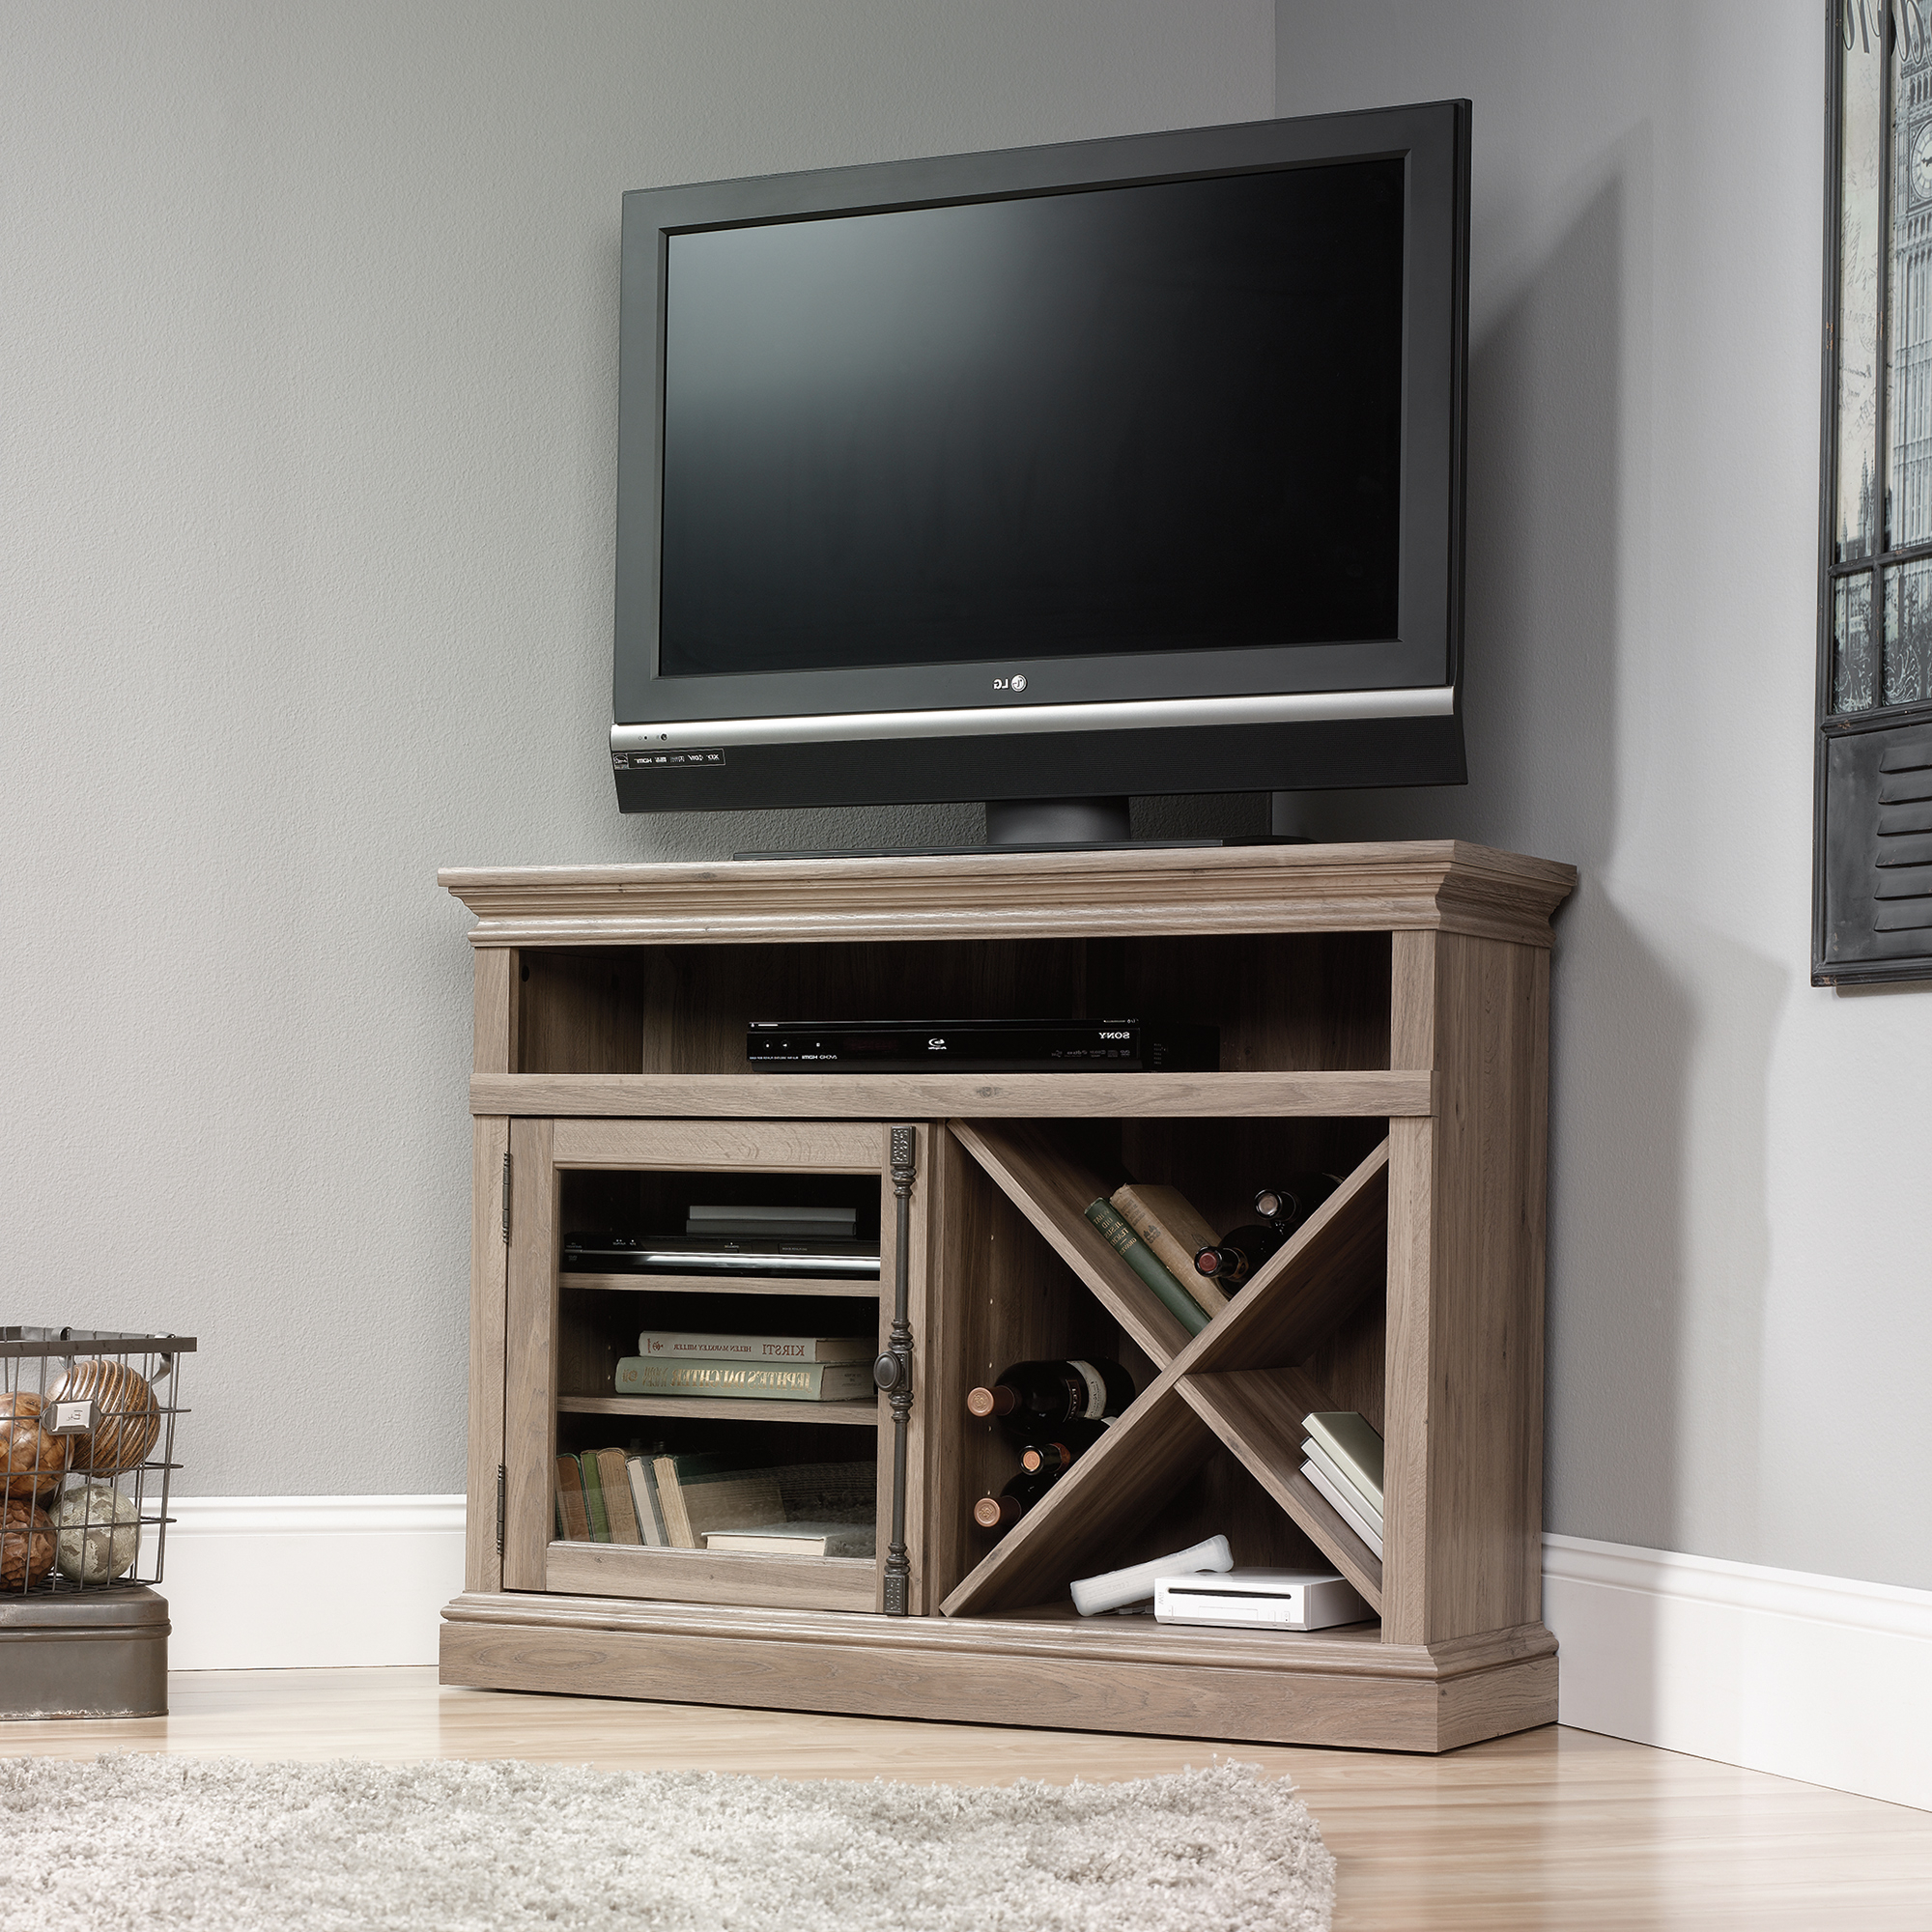 Newest Space Saving Black Tall Tv Stands With Glass Base In Sauder Corner Tv Stand (414729) – The Furniture Co (View 6 of 10)